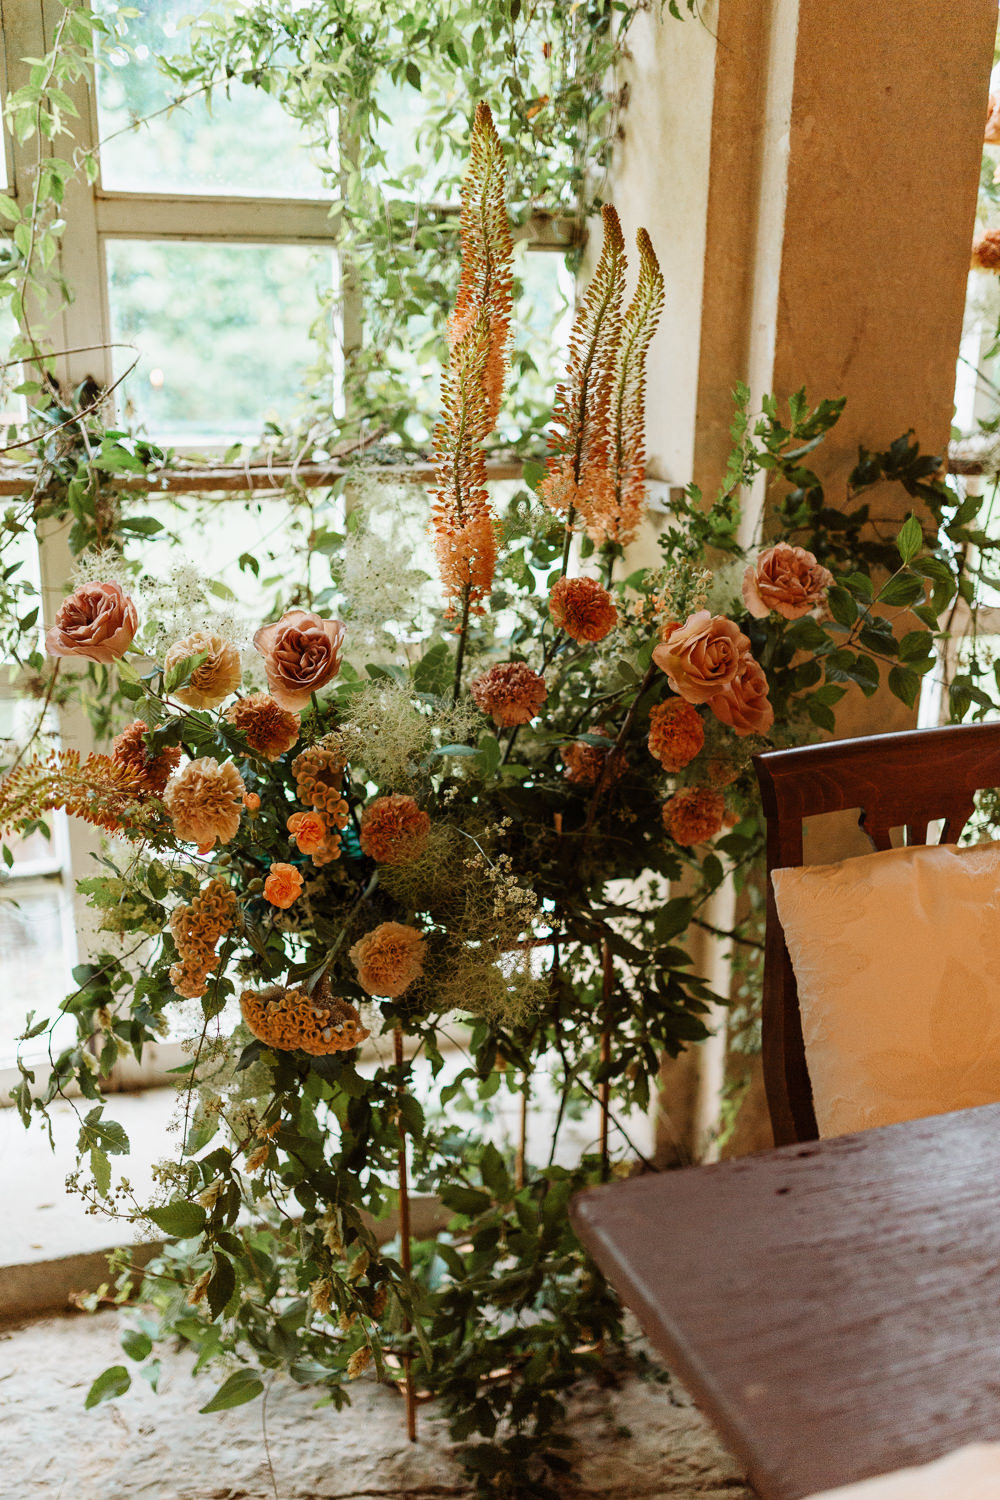 Flowers Decor Peach Rose Greenery Foliage Natural Wedding Ideas Frame Of Love